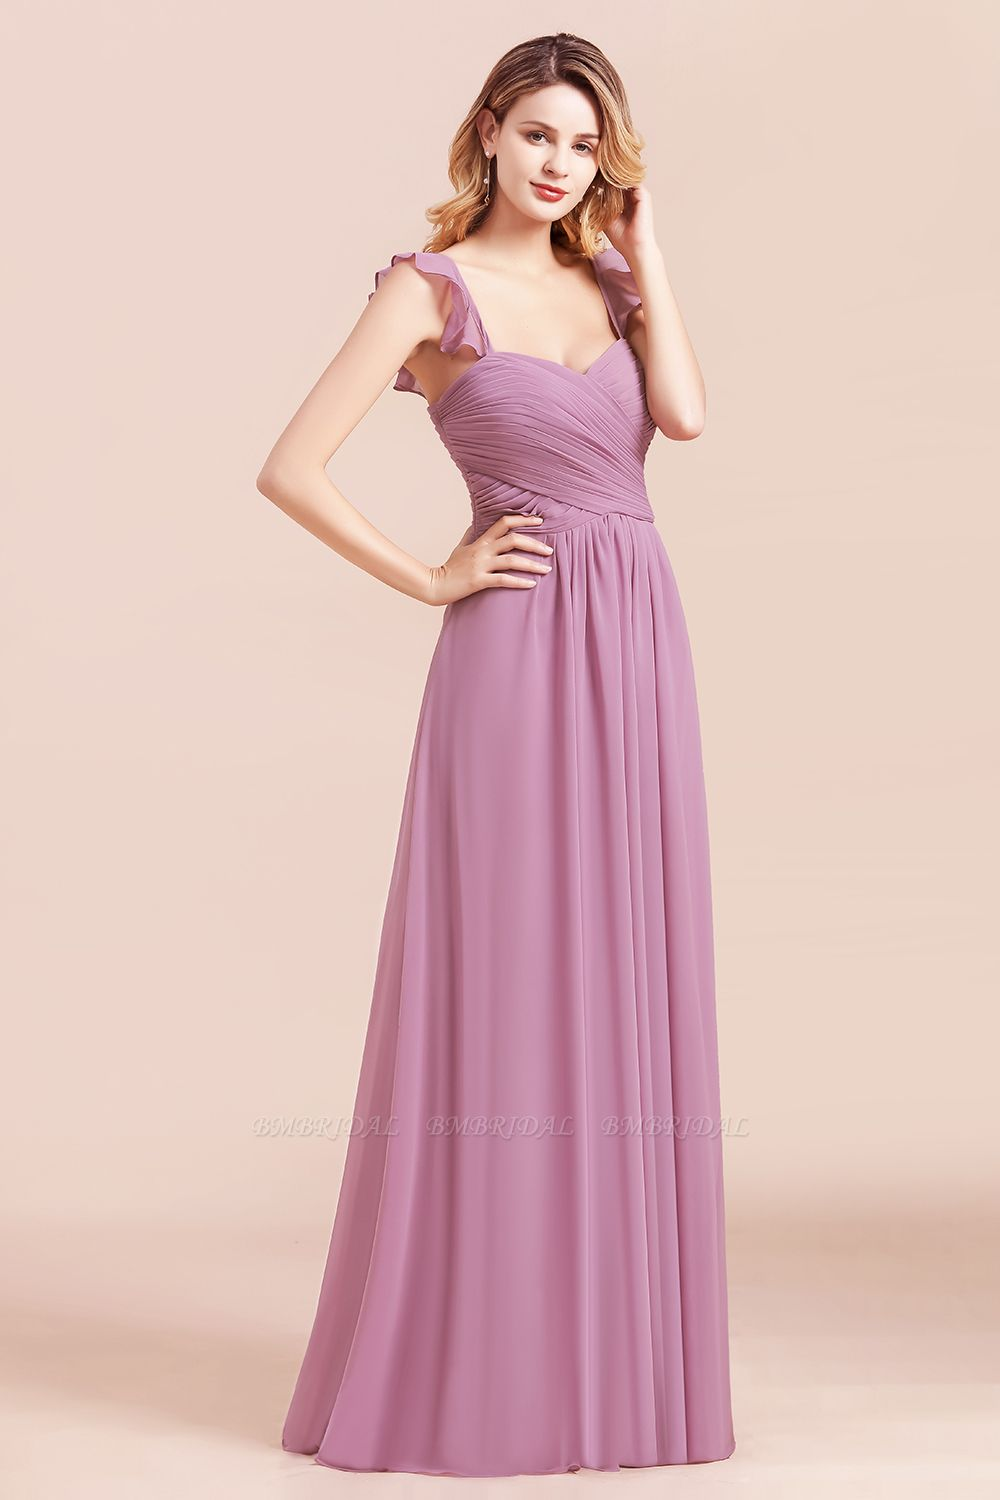 BMbridal Glamorous Sweetheart Ruffle Wisteria Chiffon Bridesmaid Dresses Affordable